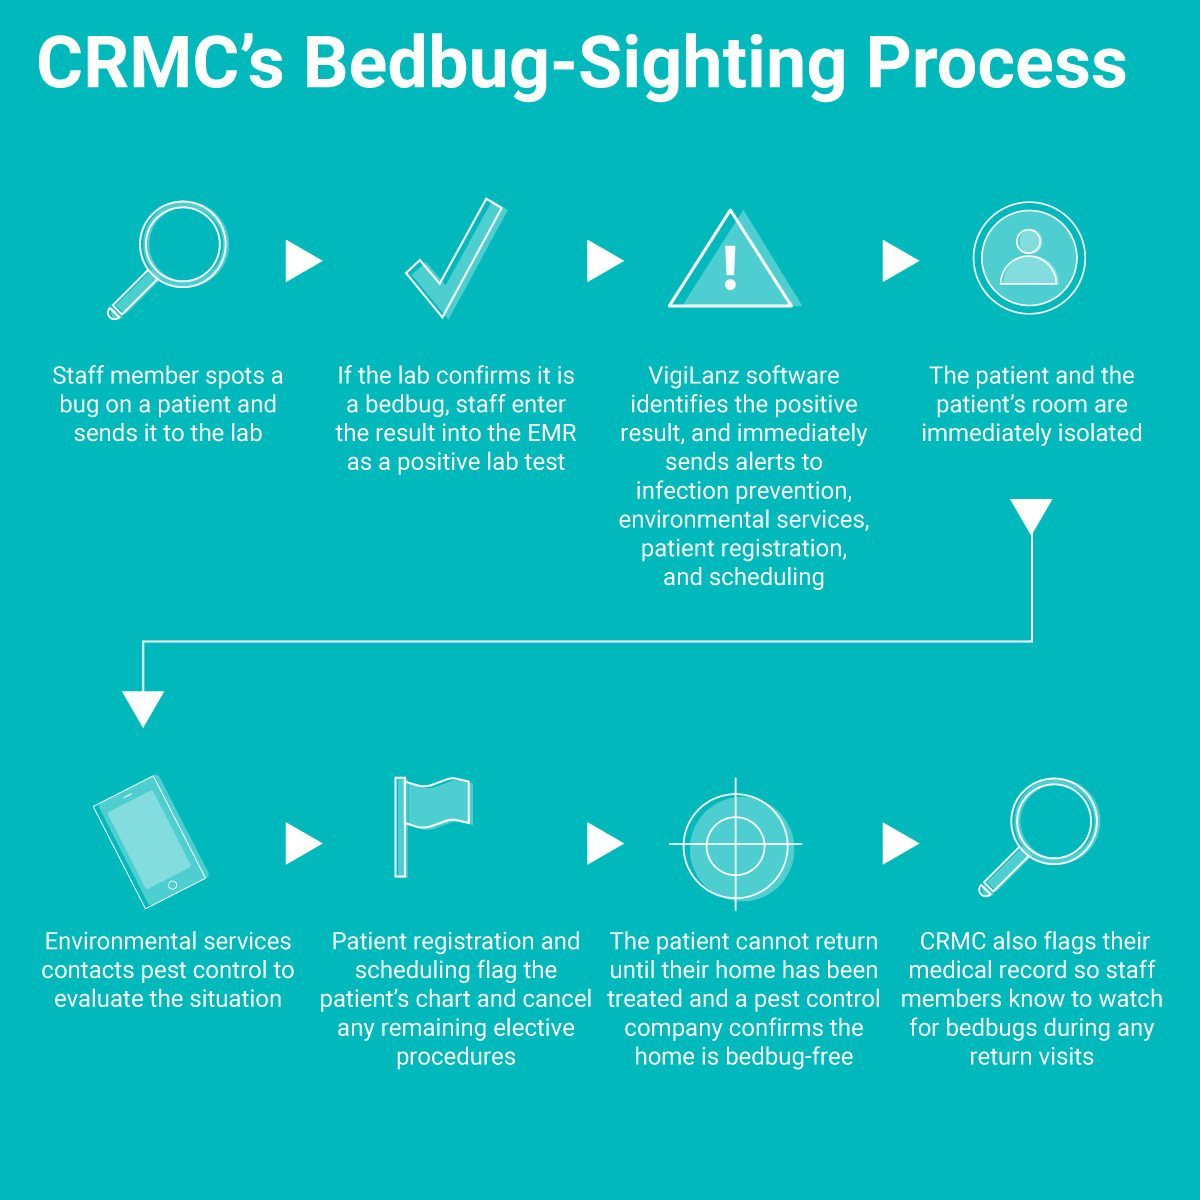 CRMC's Bedbug-Sighting Process